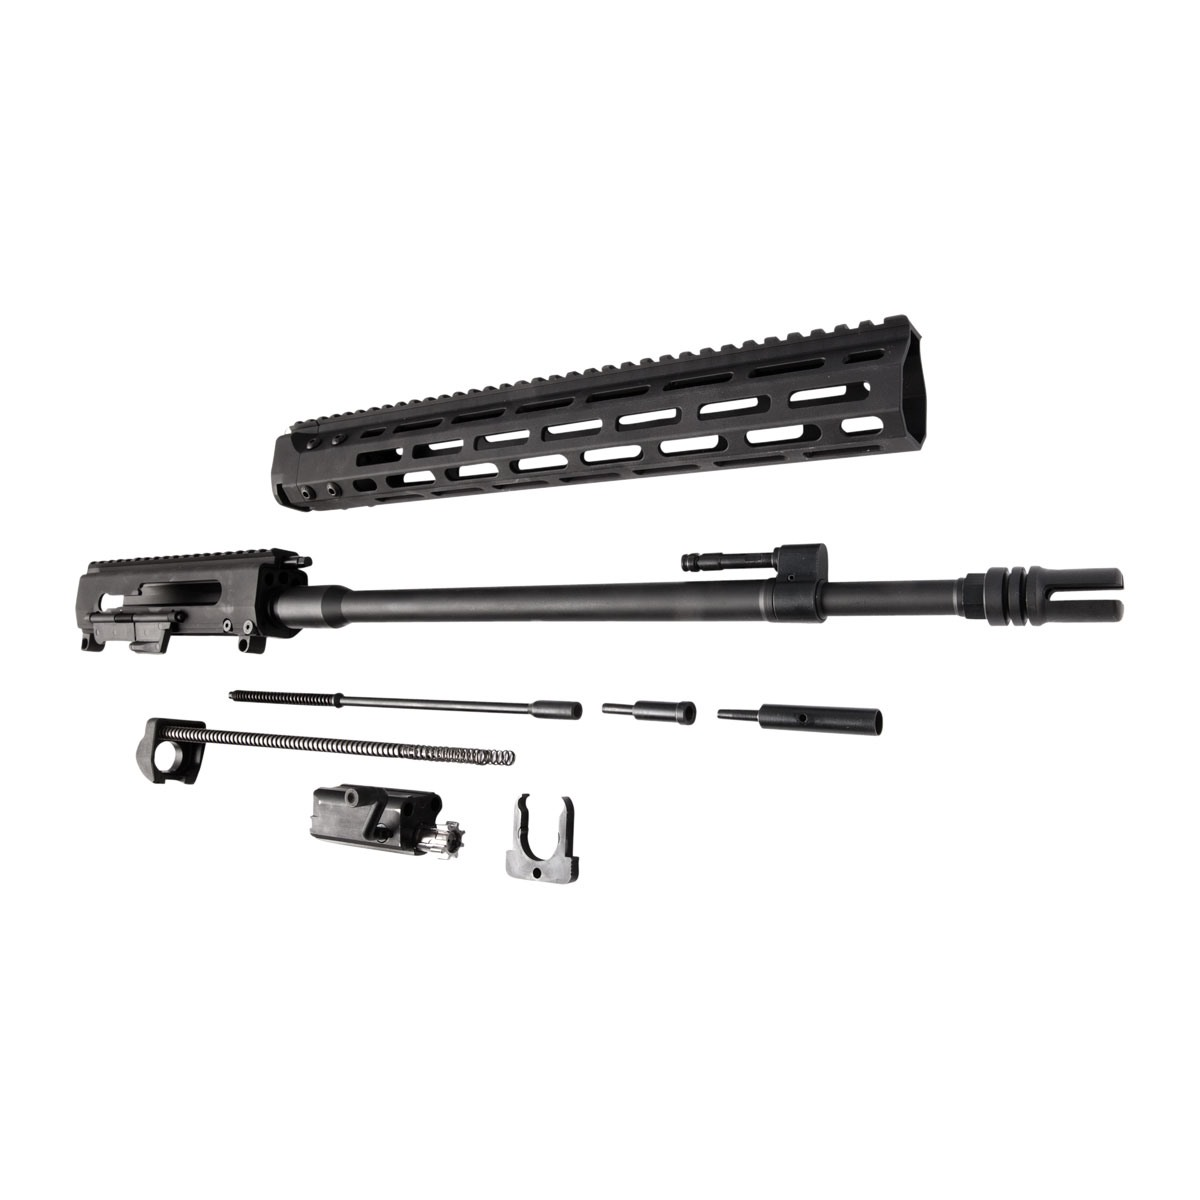 Brownells Brn 180 Ar 15 Complete Upper Receiver Assembly